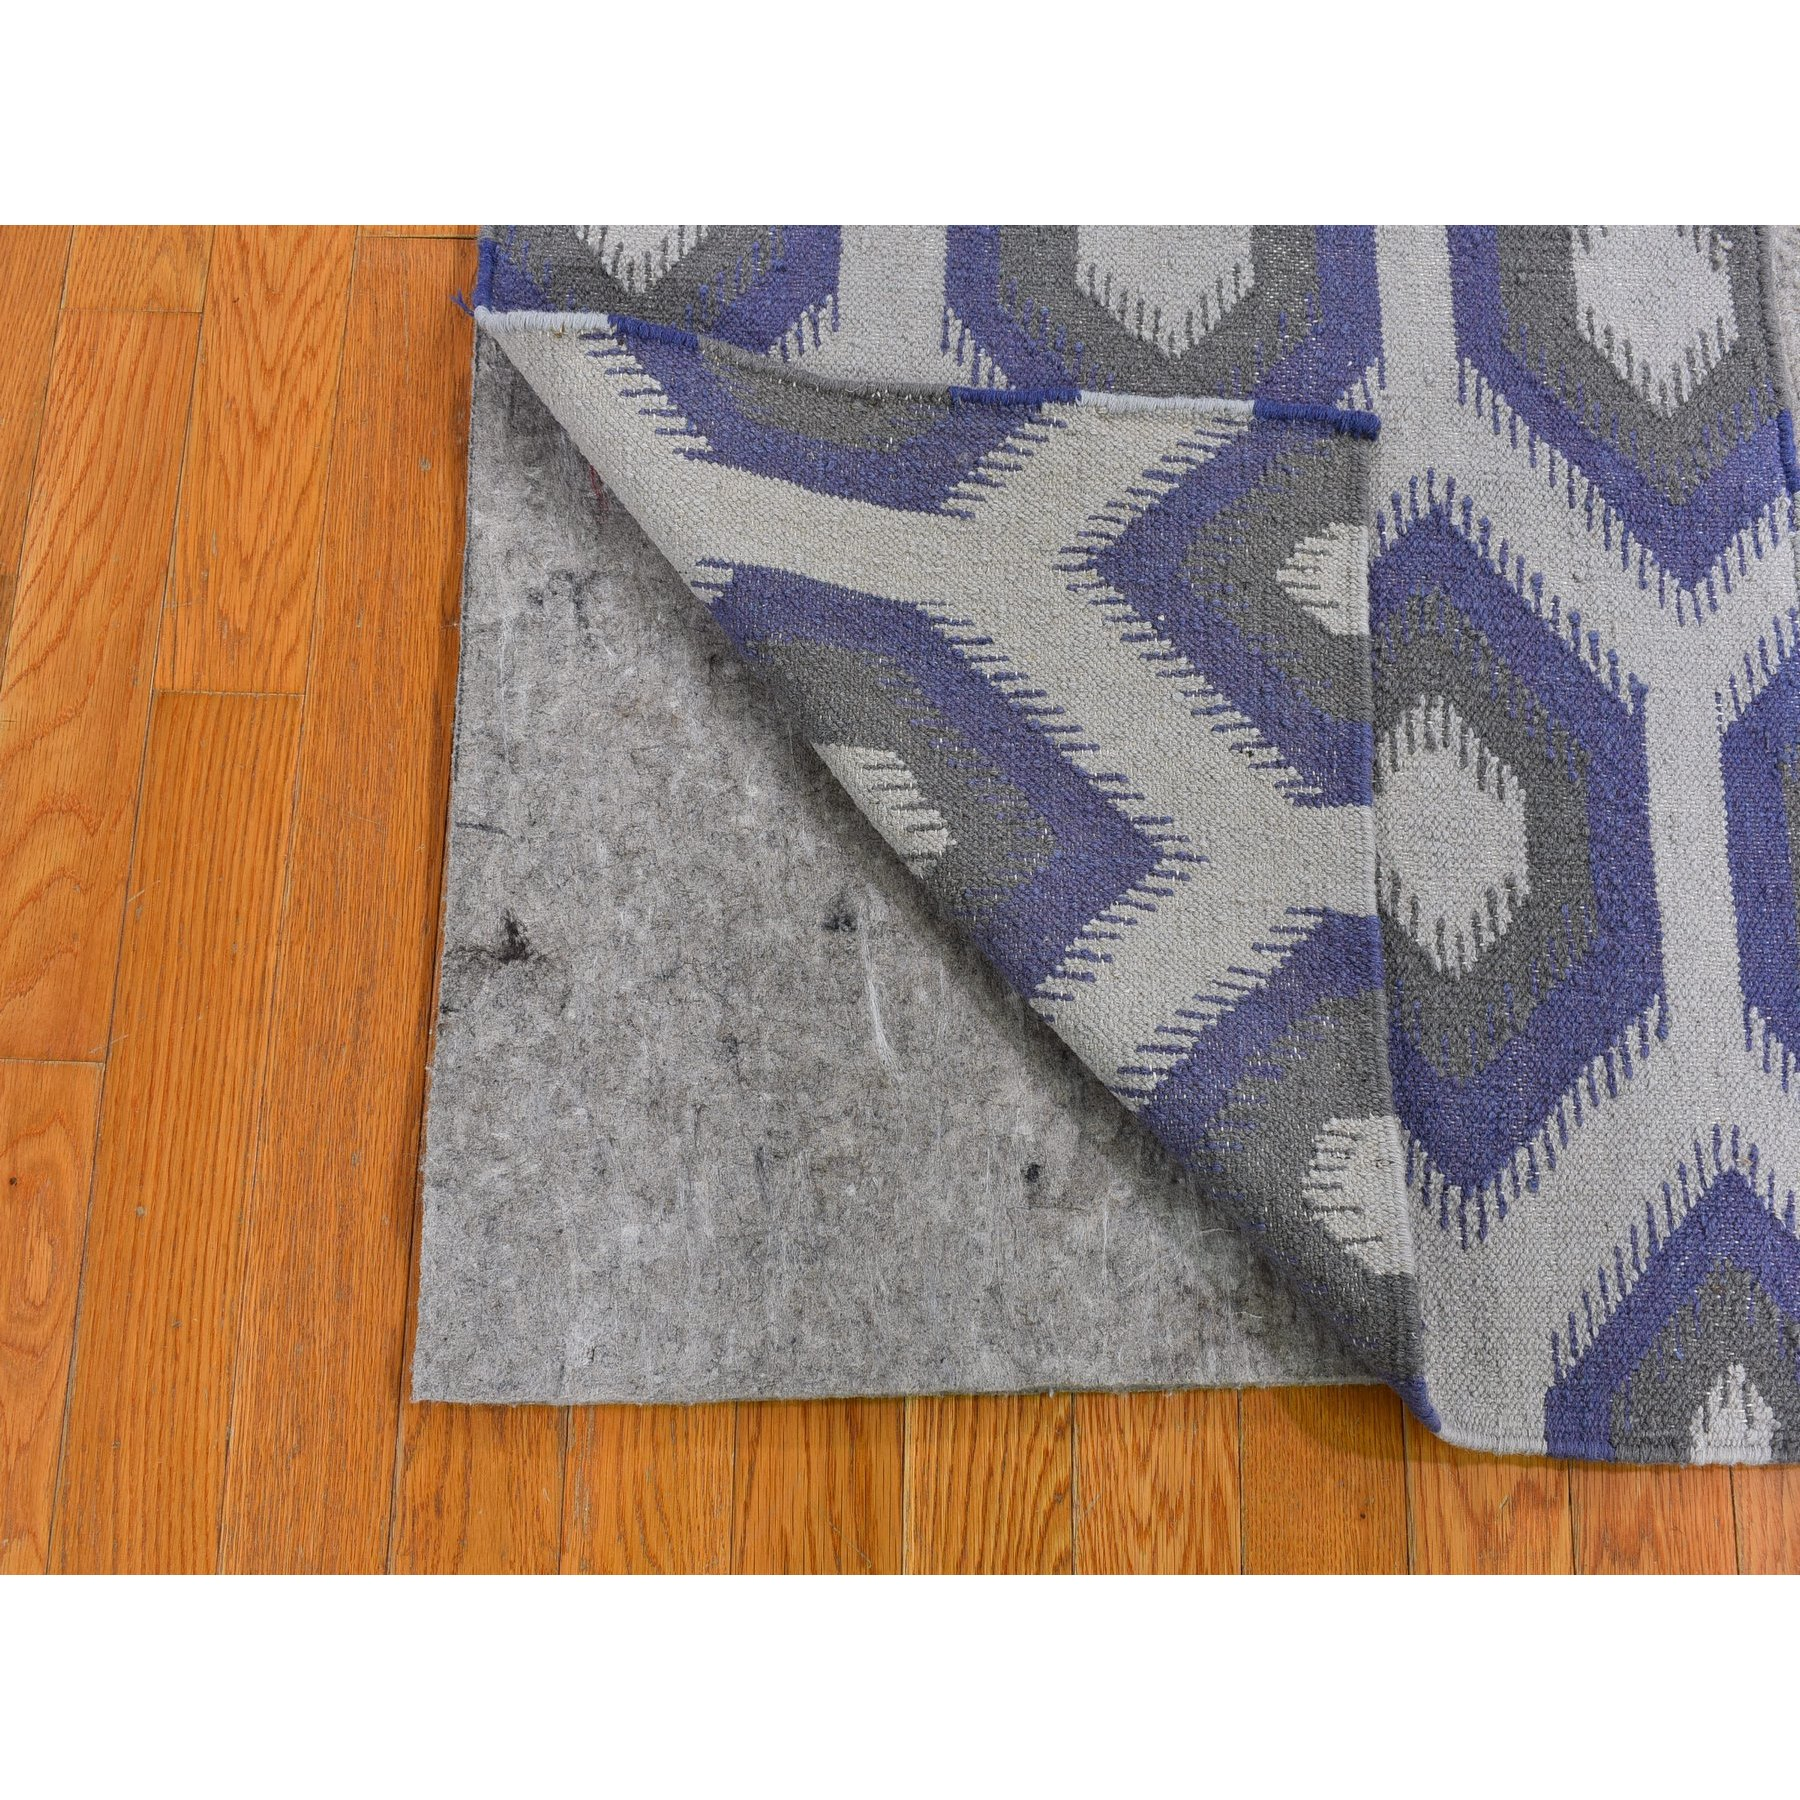 "2'5""x6' Pure Wool Reversible Kilim Flat Weave Chalk Violet Hand Woven Diamond Shape Wide Runner Oriental Rug"